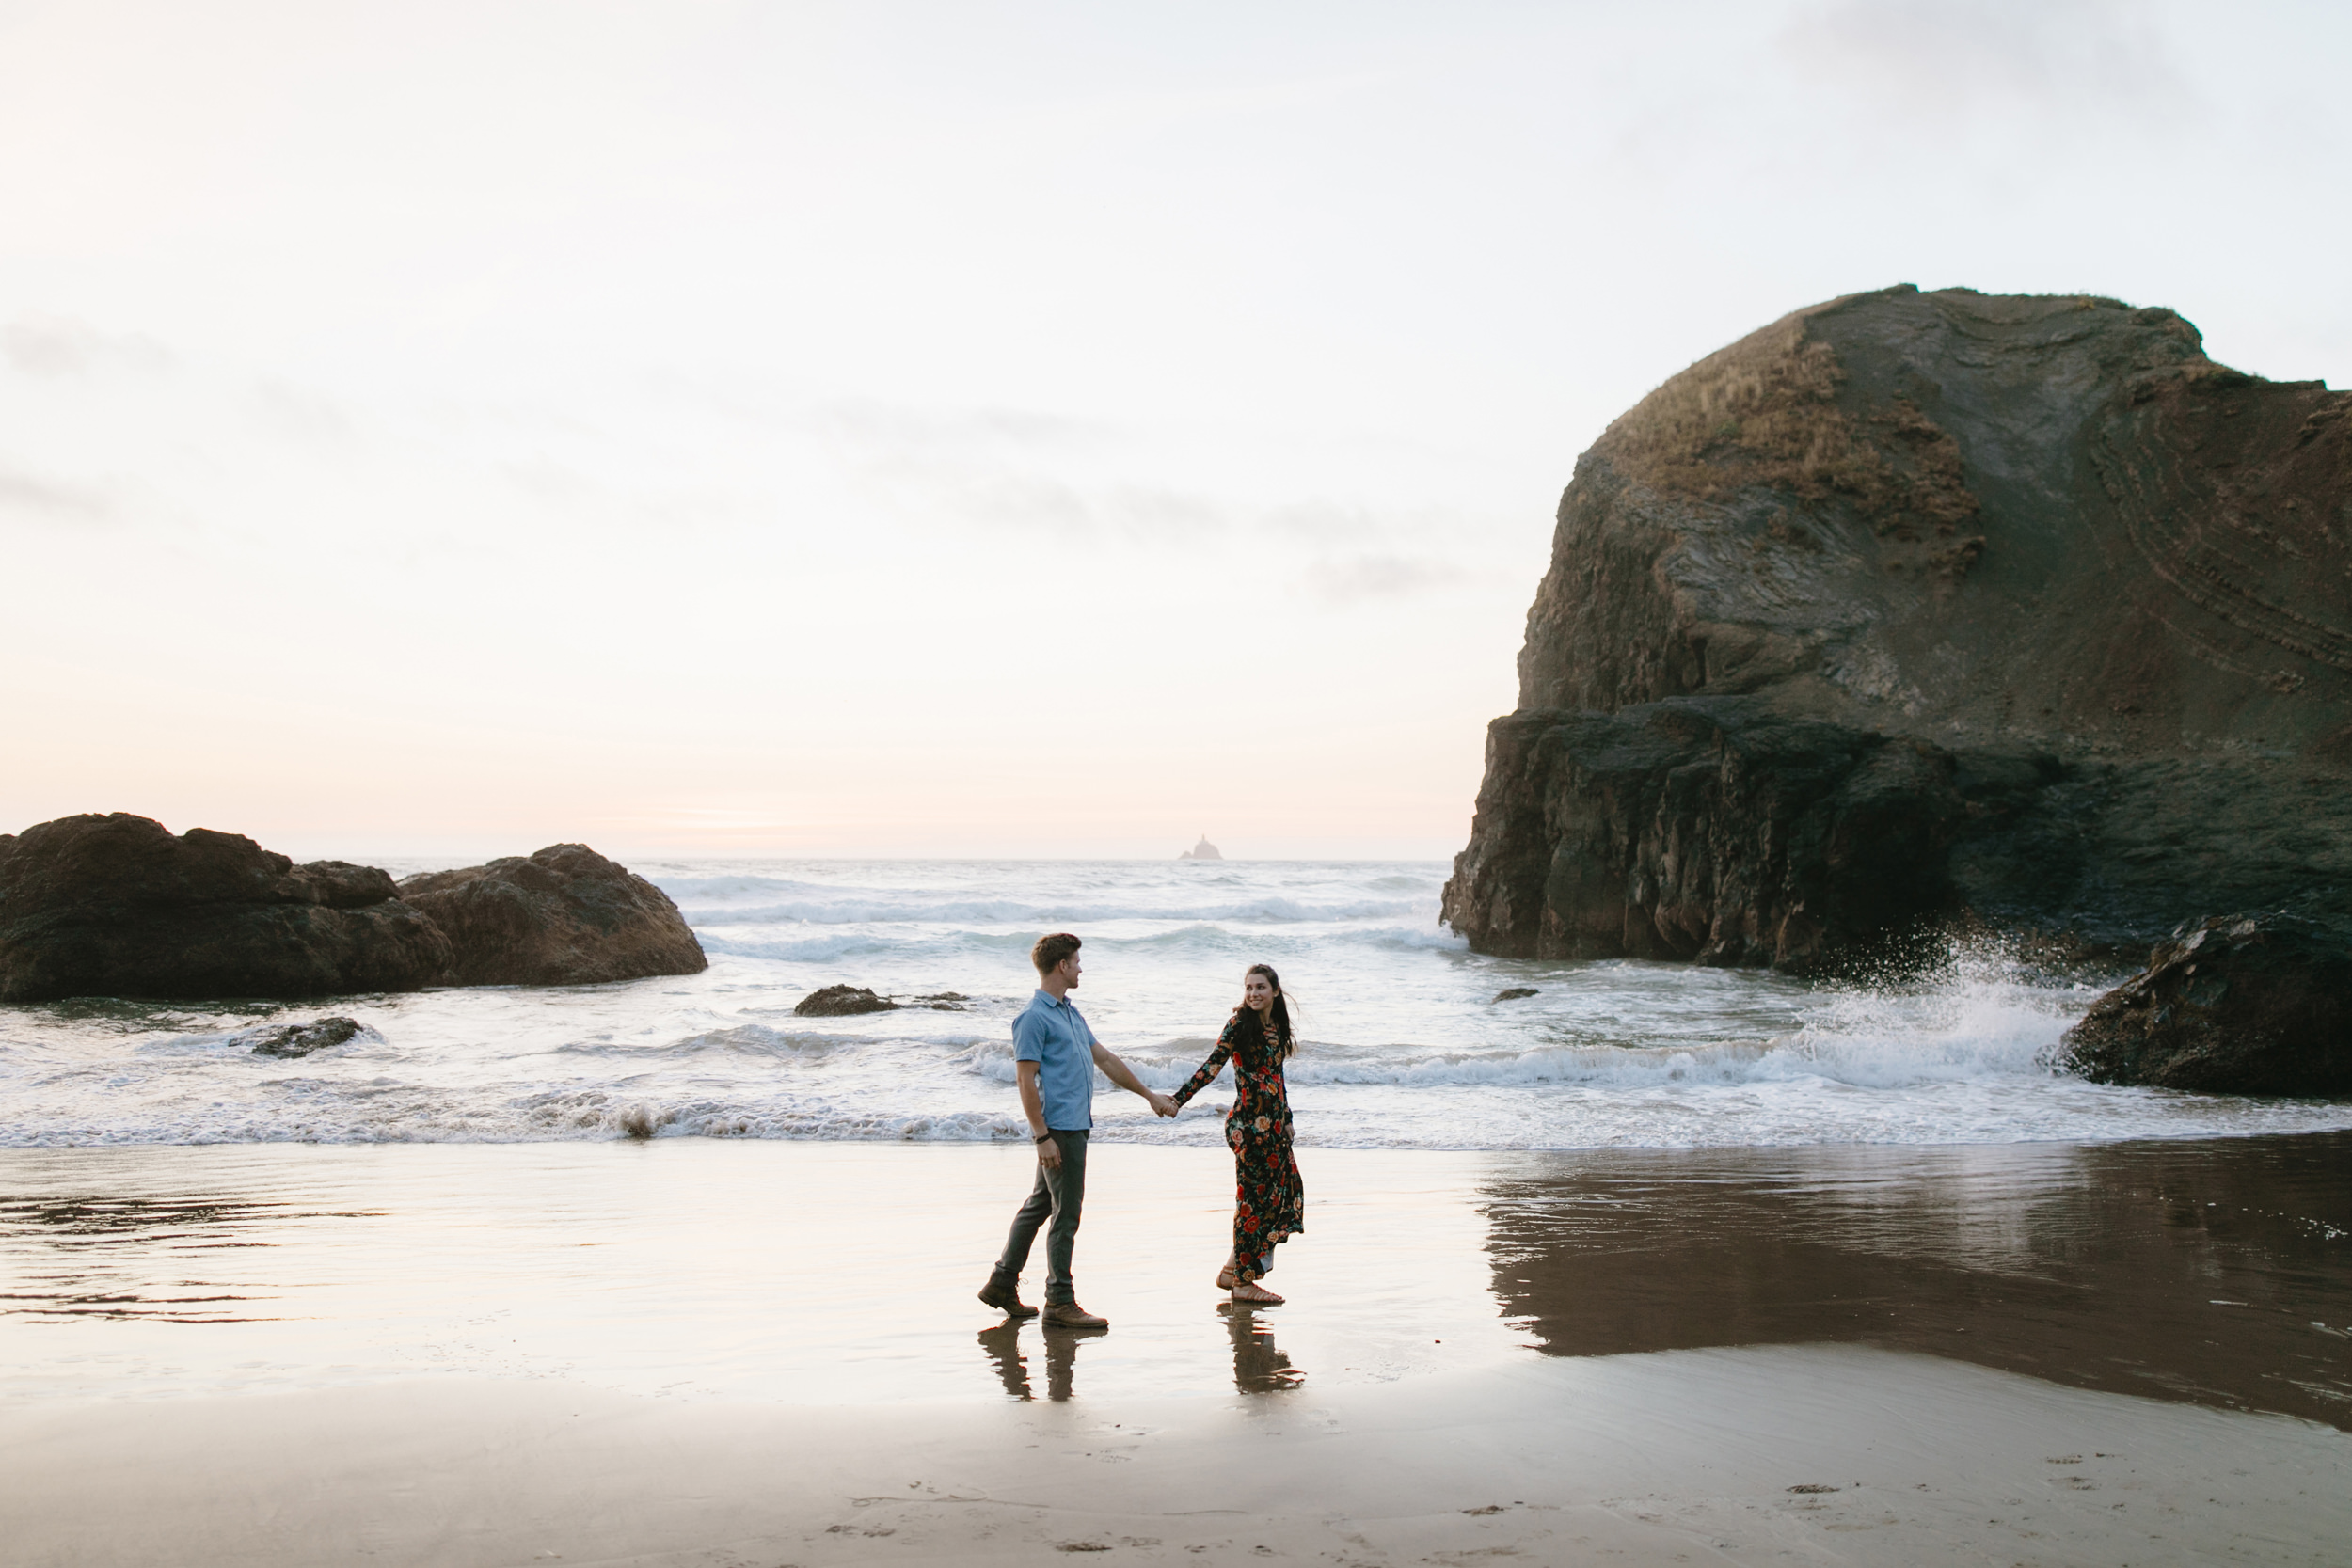 Cannon-Beach-Adventure-Engagement-Photography-Oregon-Destination-Elopement-Photographer178.JPG